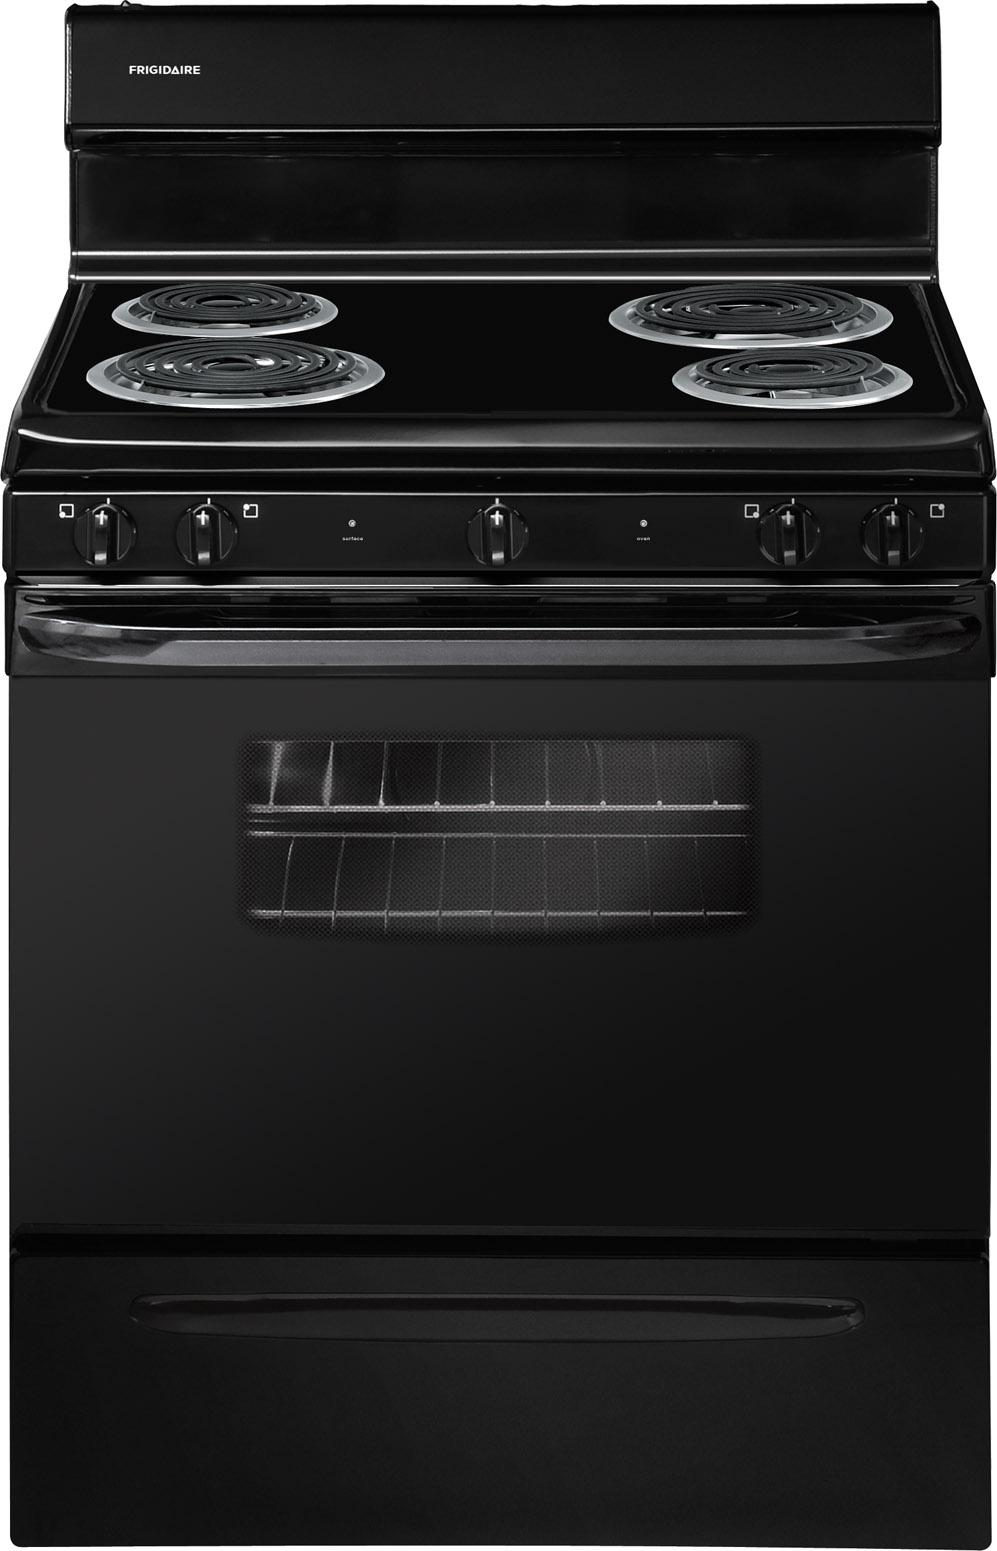 "Frigidaire Electric Range 30"" Freestanding Electric Range - Item Number: FFEF3009PB"